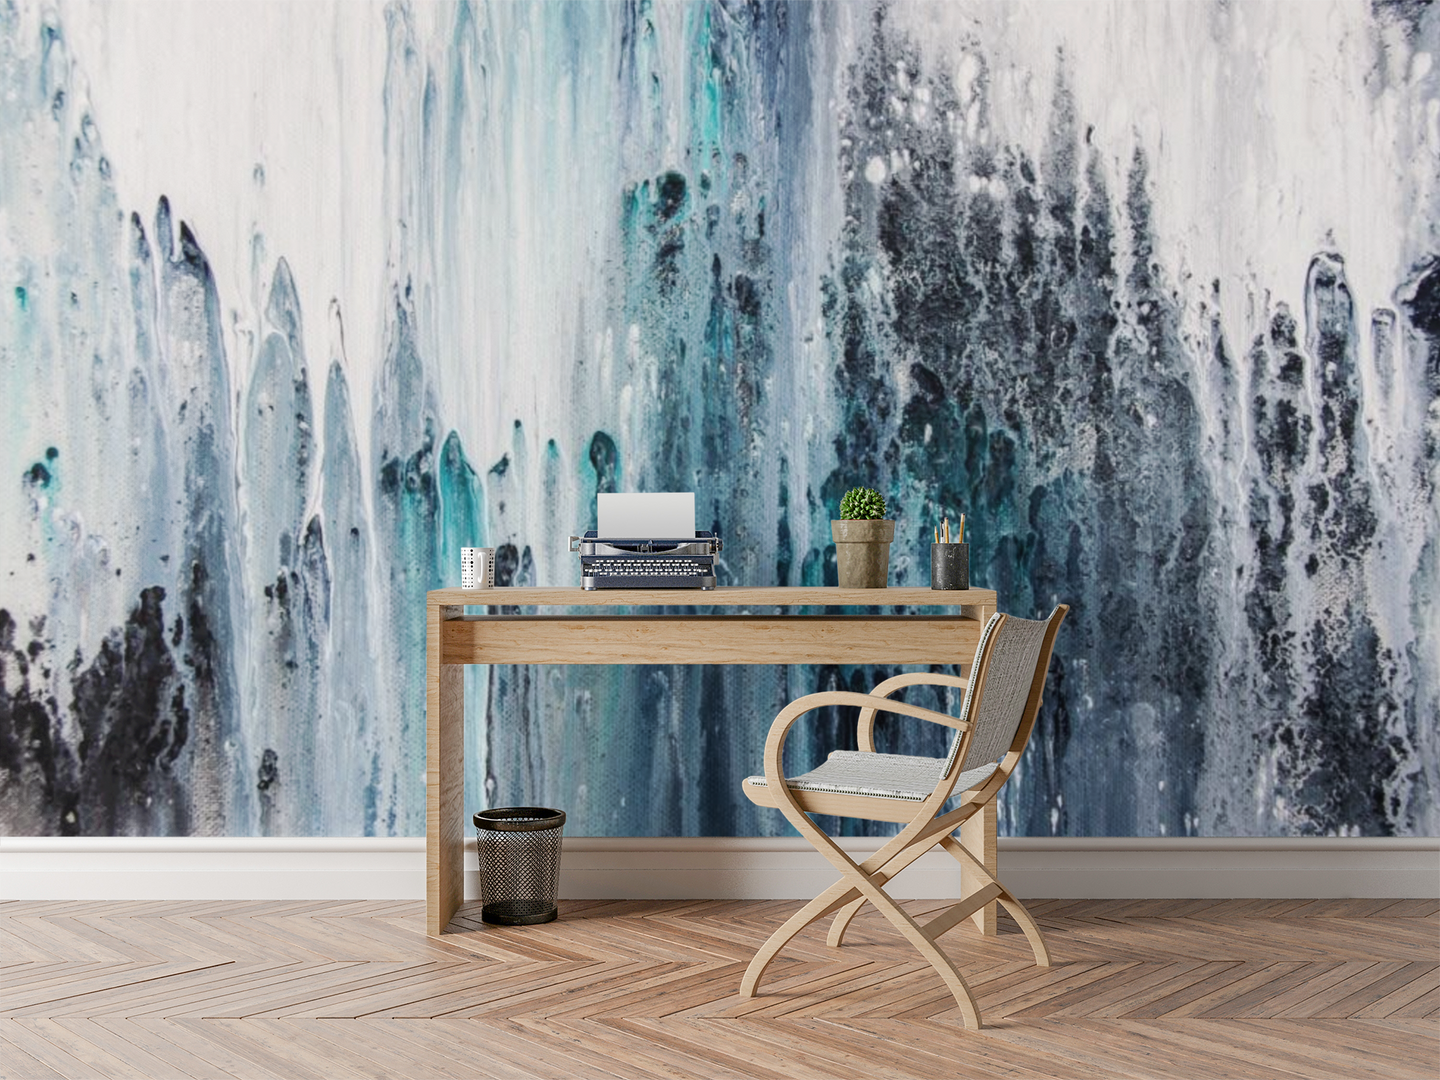 Dripping Paint - 037 - Wall Murals Printing - wall art